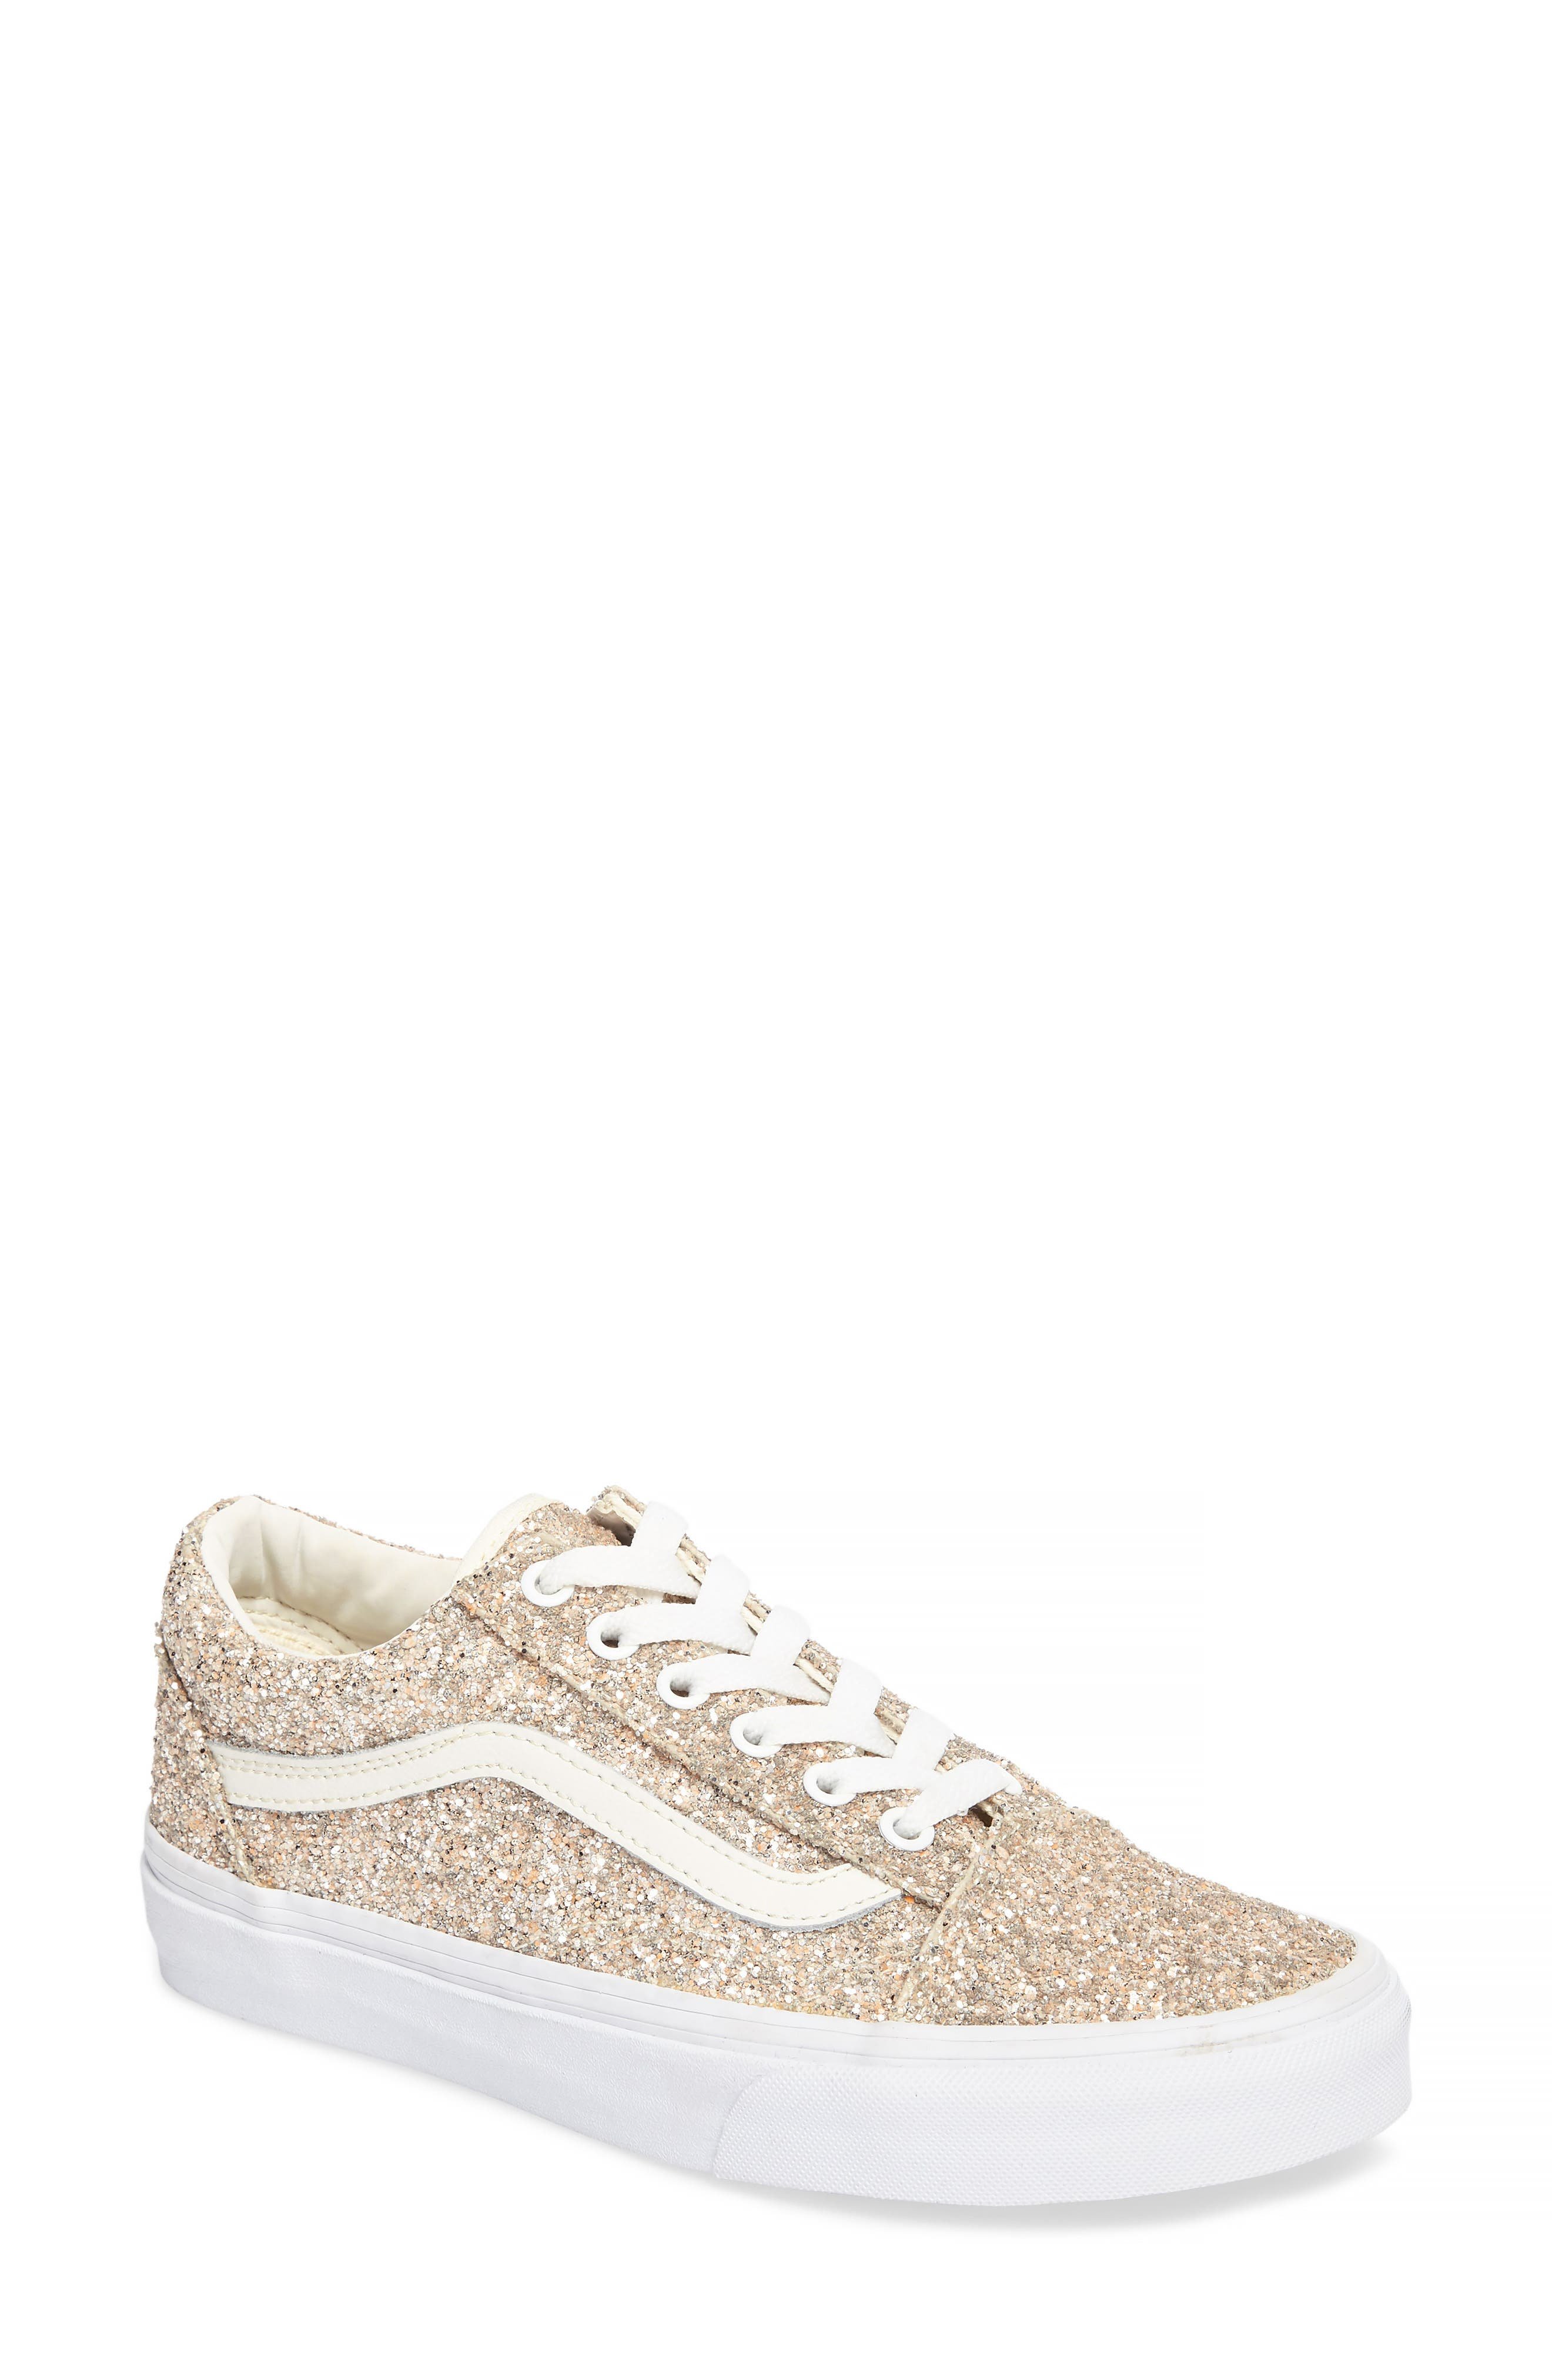 Alternate Image 1 Selected - Vans Old Skool Sneaker (Women)